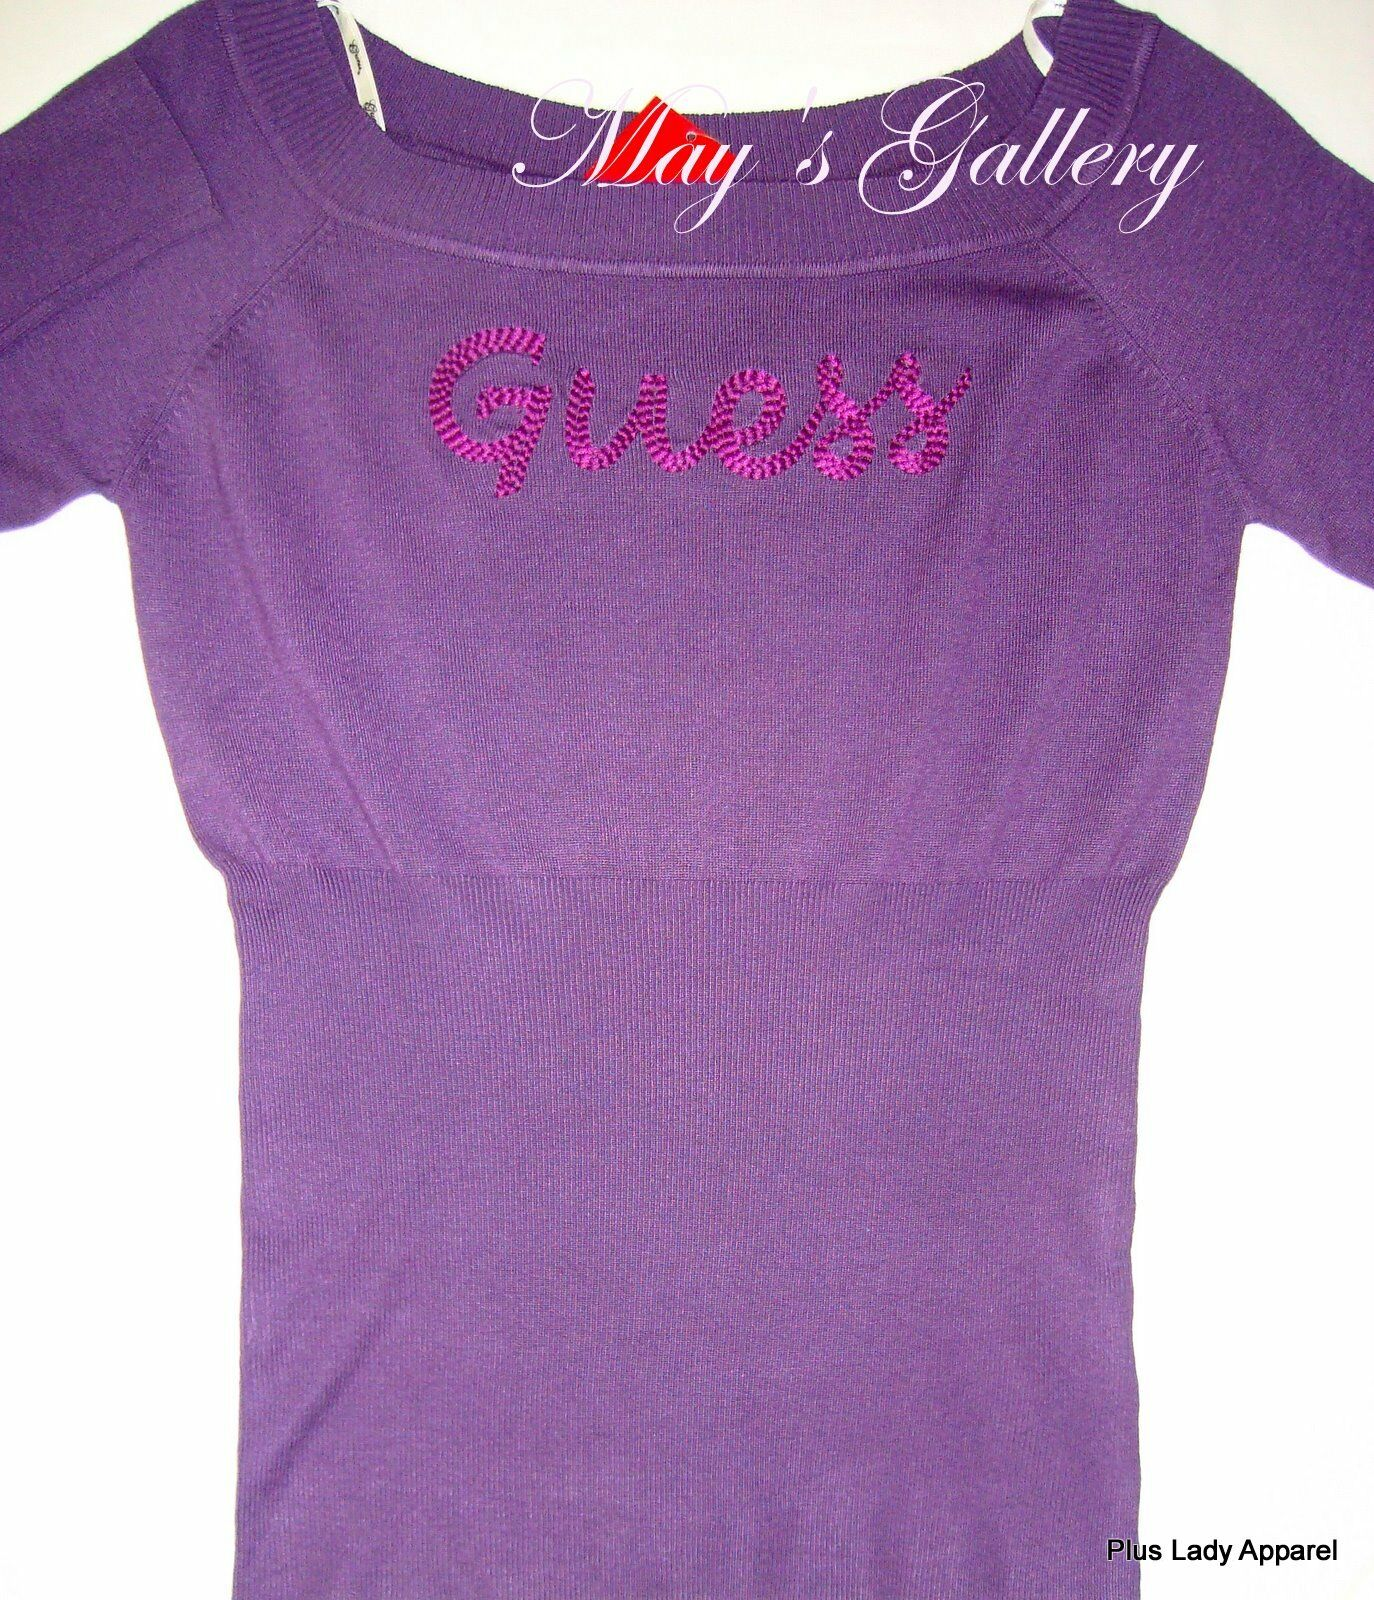 Guess  jeans Sweater T shirt  Tee Blouse Top Purple  Sweatshirt Hoodies  NWT XL